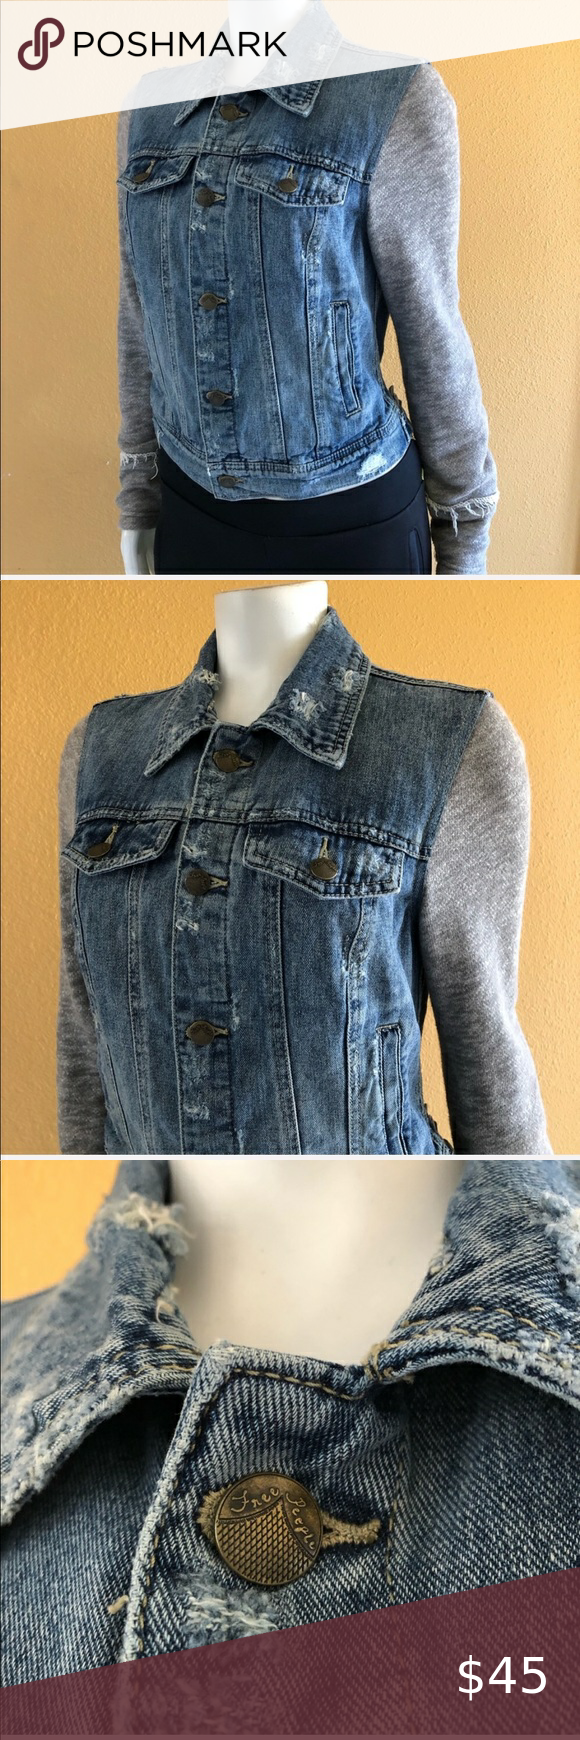 Free People Jean Jacket Size Xs In 2020 Distressed Denim Jacket Free People Jean Jacket Distressed Denim